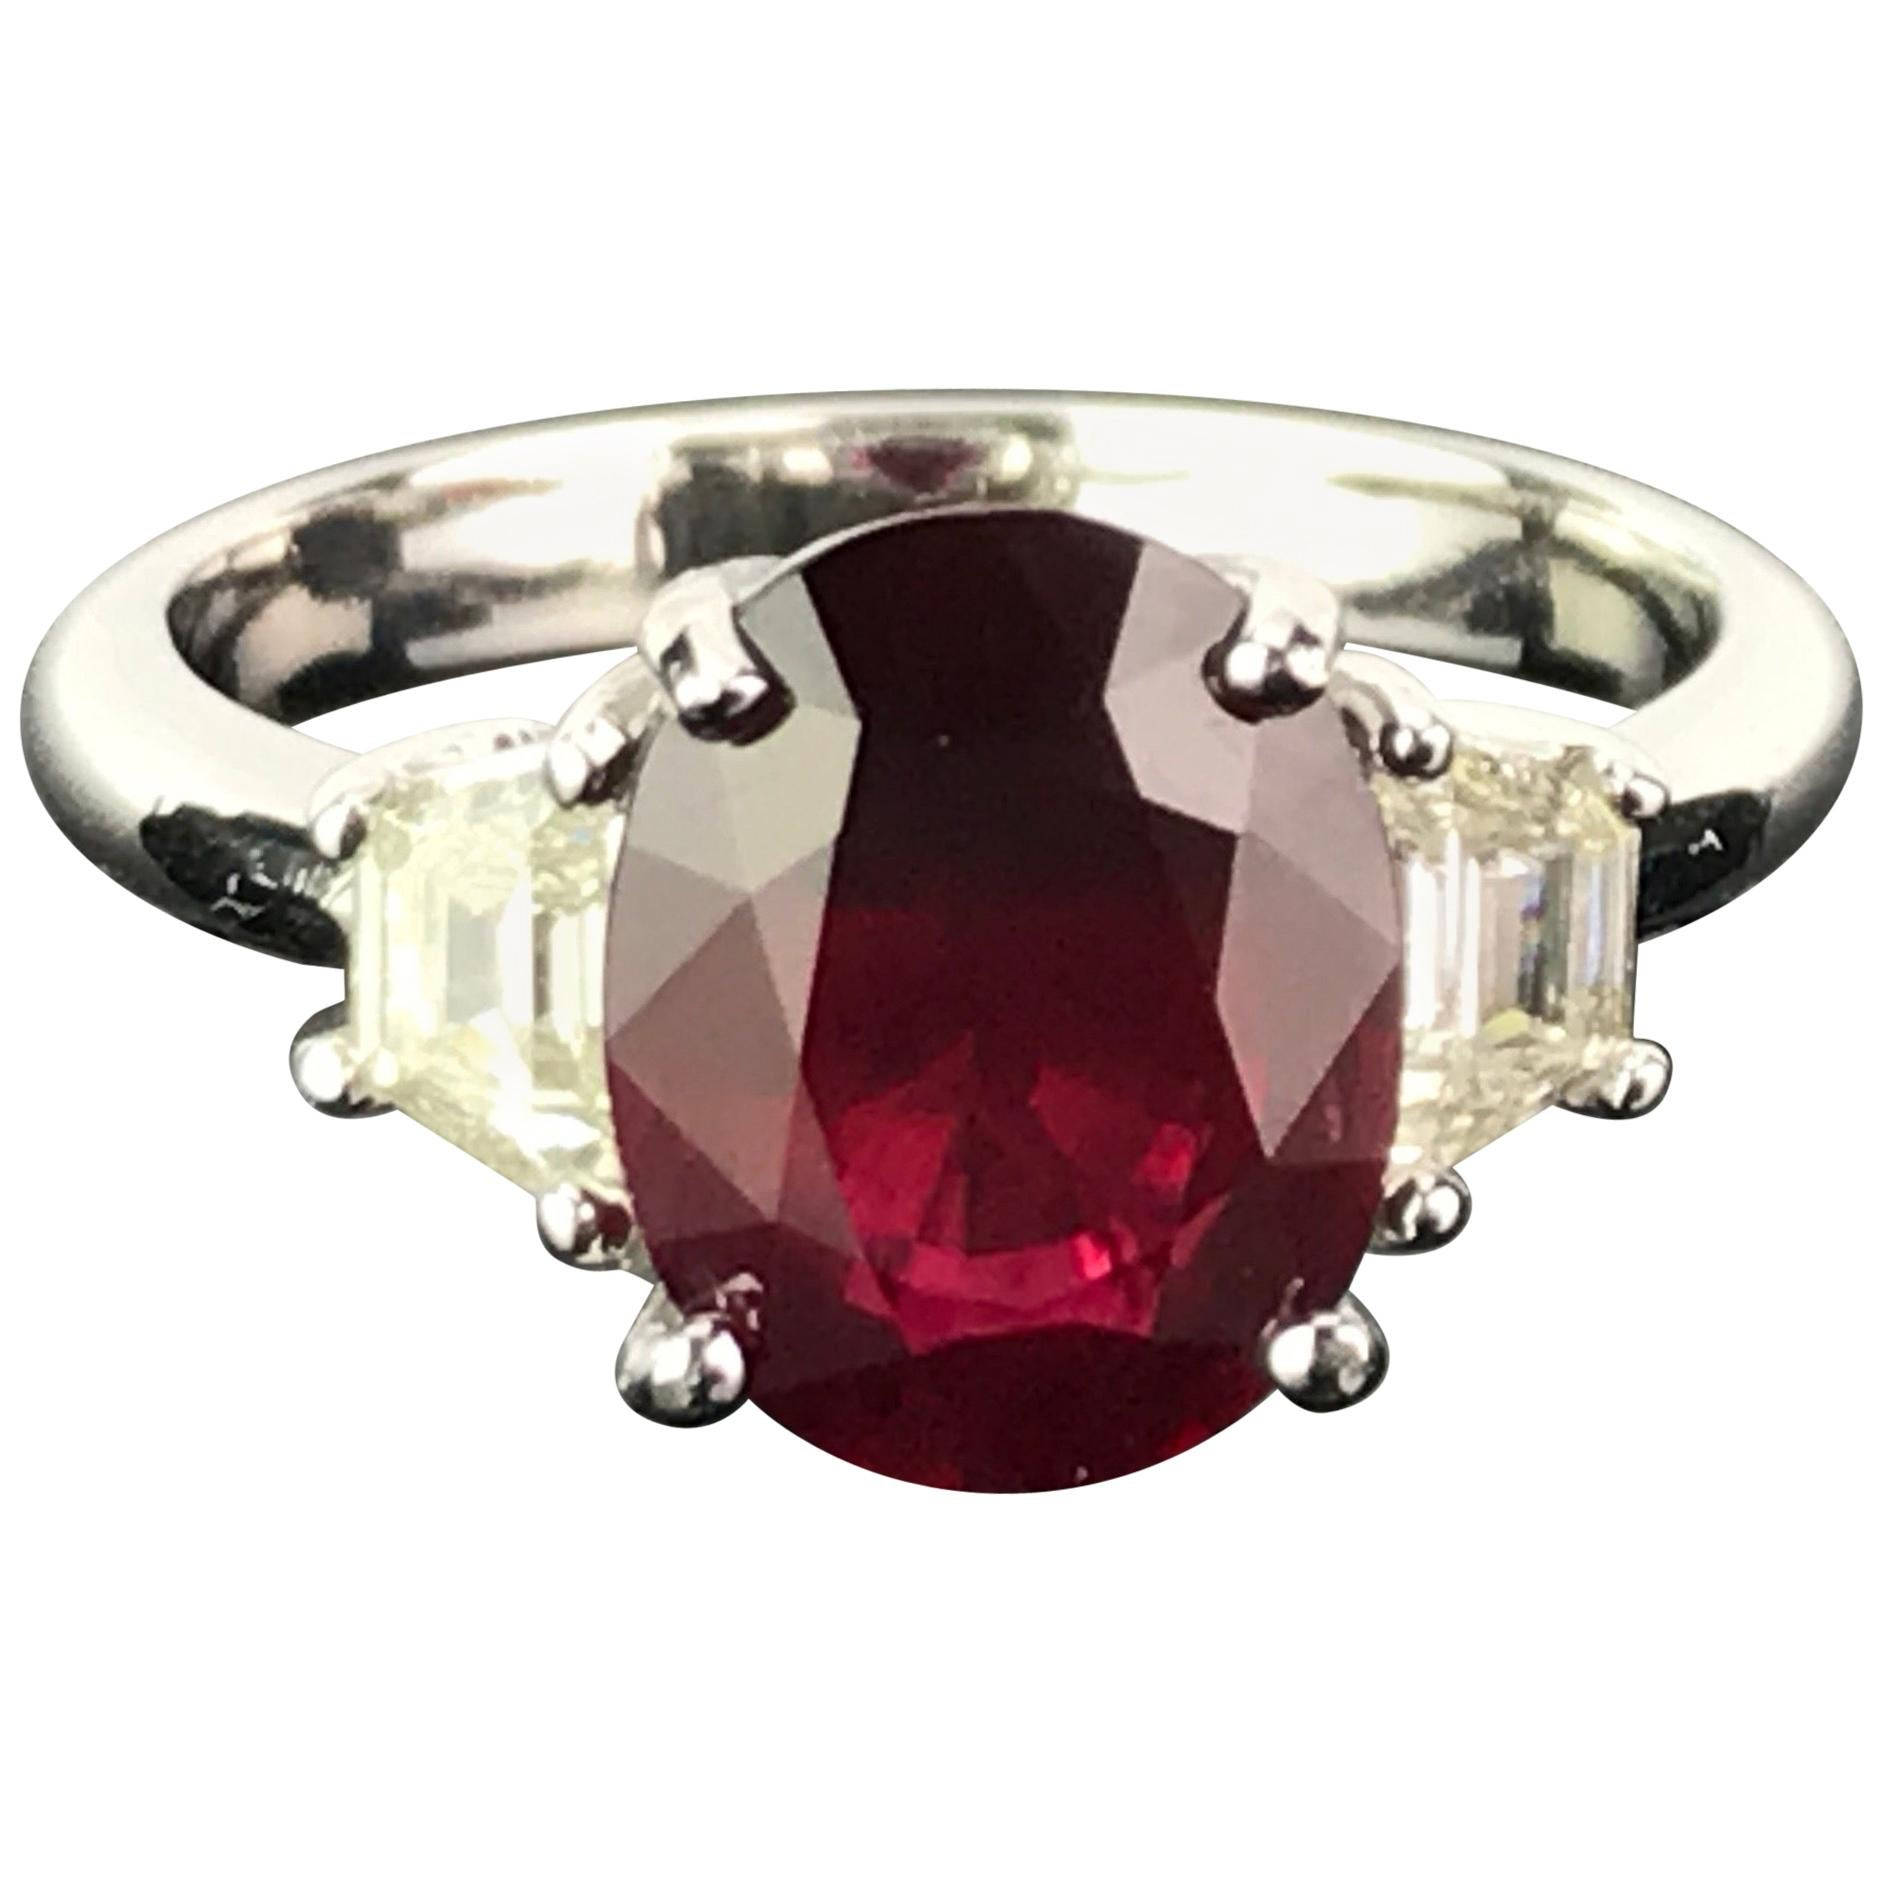 3.07 Carat Mozambique Ruby and Diamond Three-Stone Engagement Ring